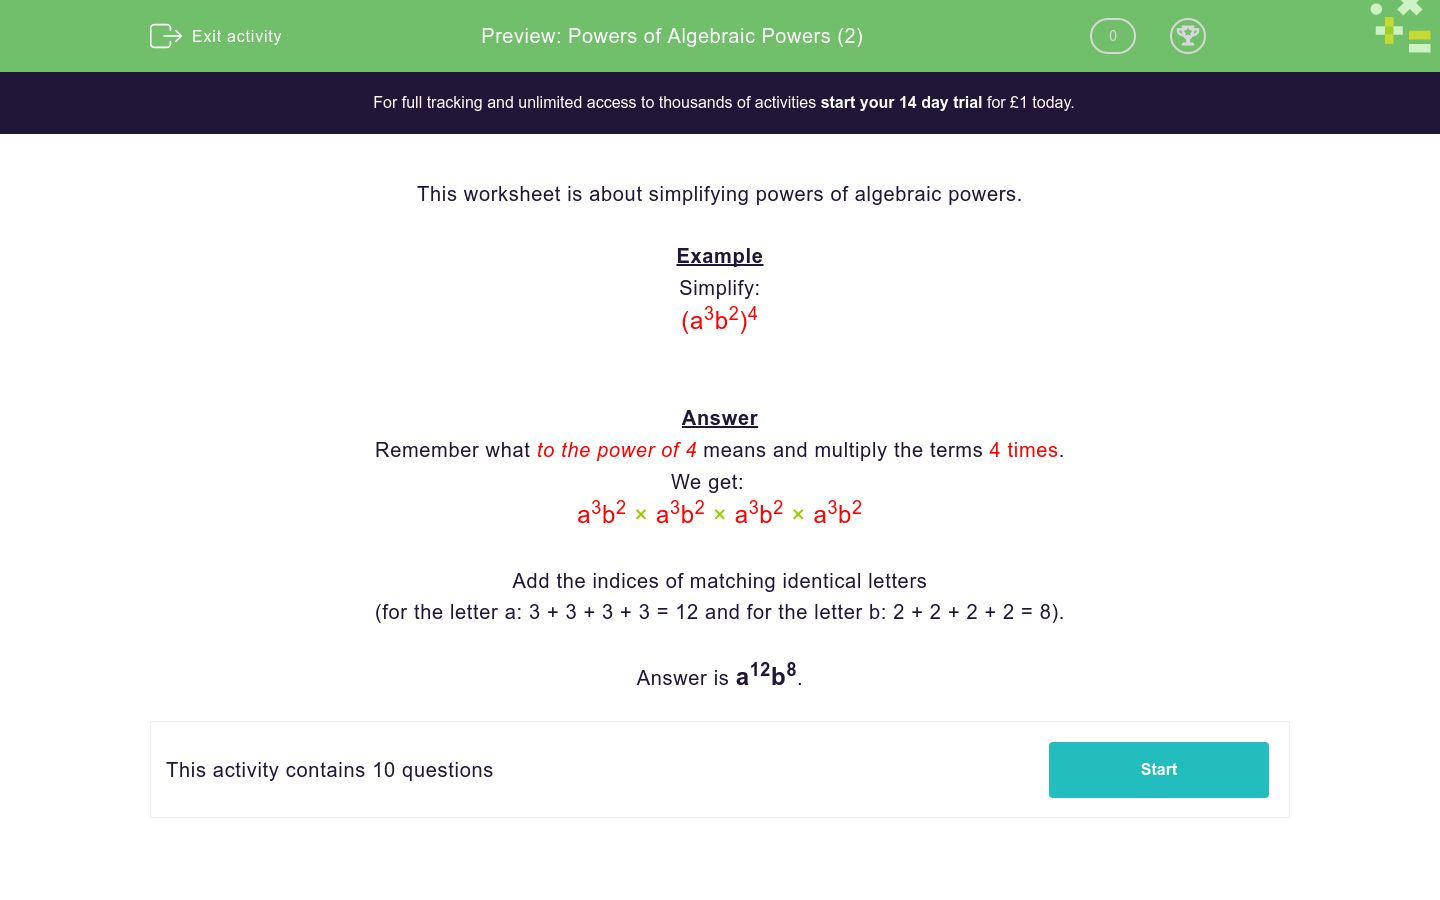 'Powers of Algebraic Powers (2)' worksheet